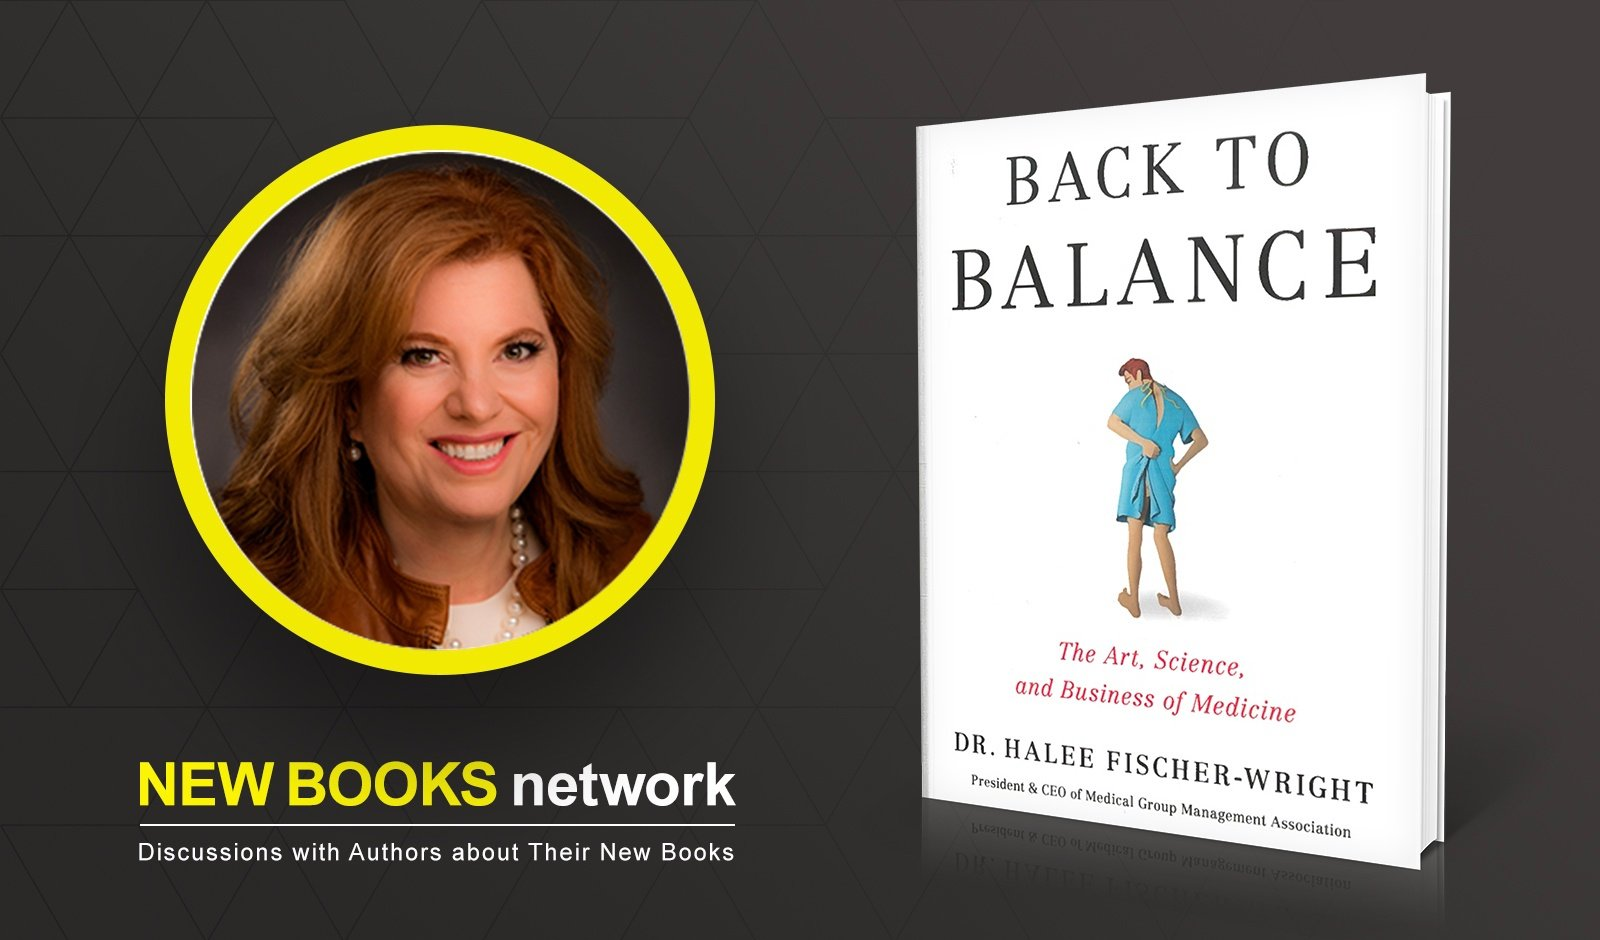 New Books in Medicine Podcast: Dr. Halee Fischer-Wright Pulls Back the Curtain on Imbalances in Healthcare